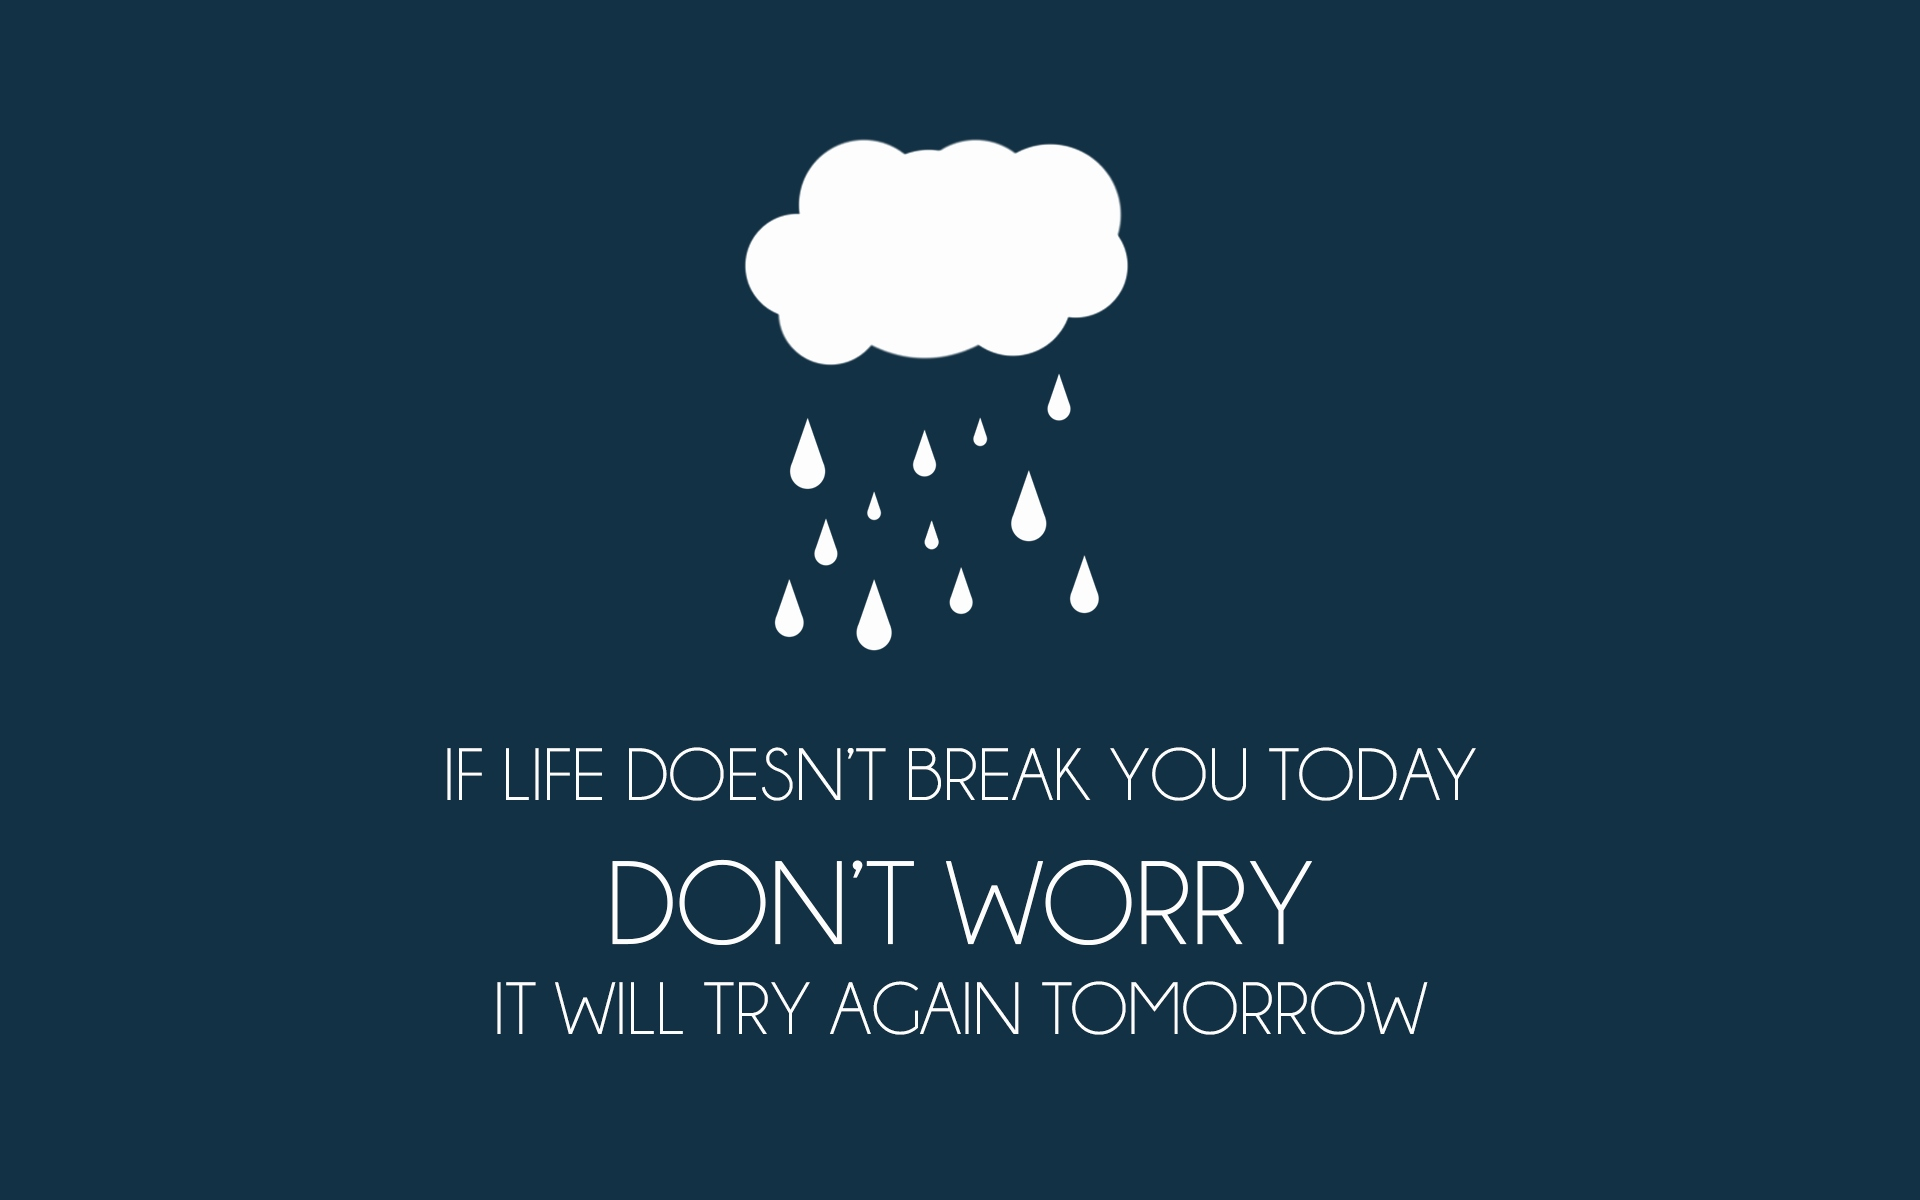 Galaxy Wallpaper Funny Quotes Best Of Funny Motivational - Comedy Wallpaper Related To Life , HD Wallpaper & Backgrounds